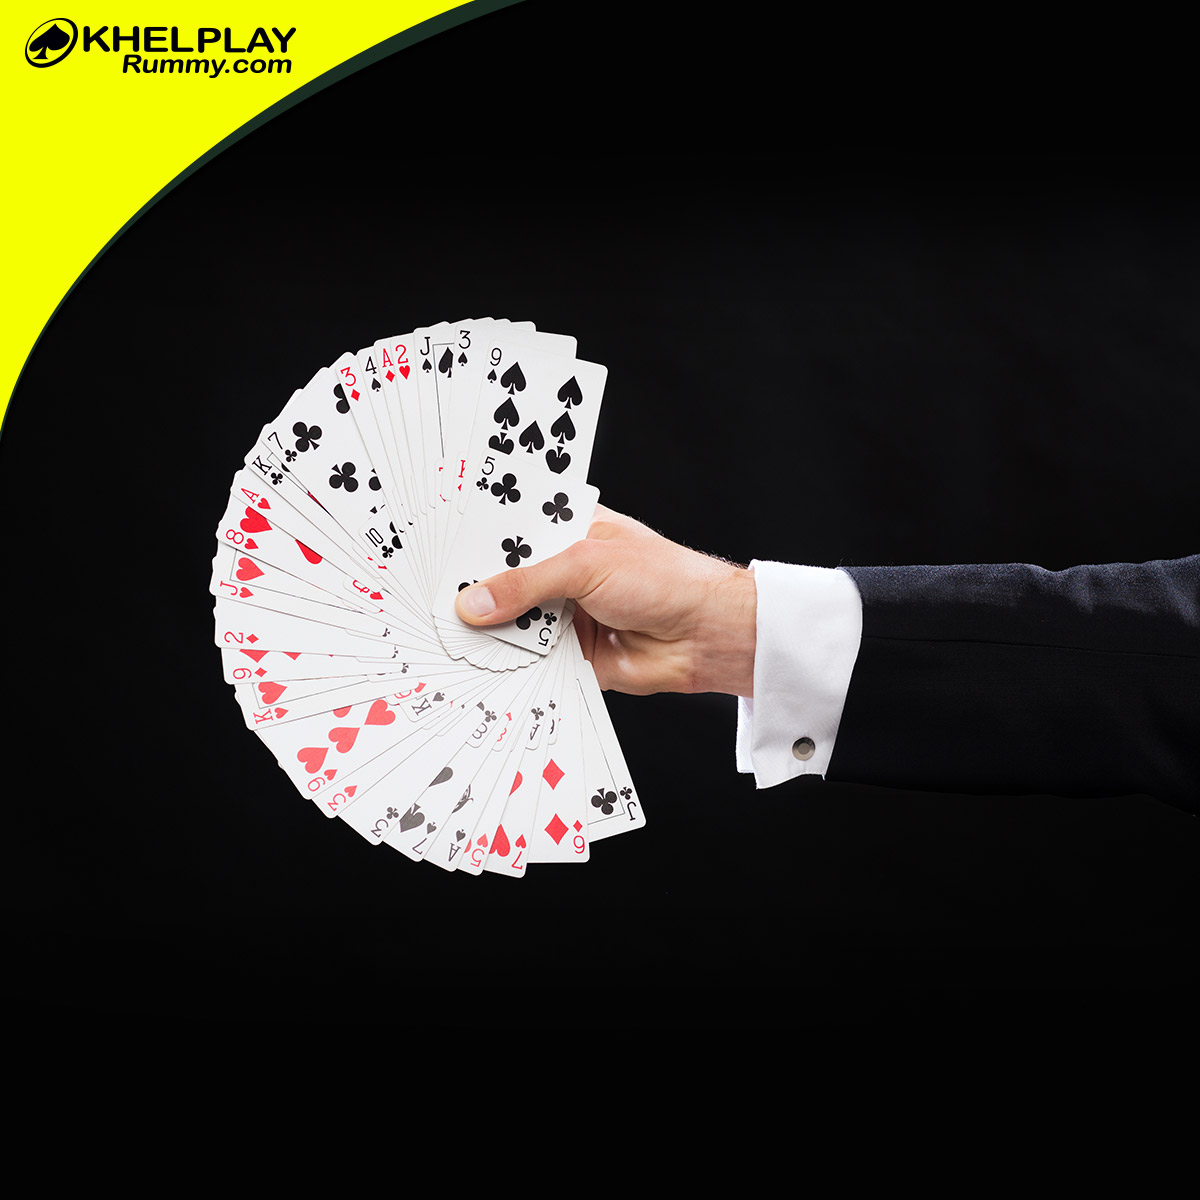 4 Traits Common to Online Cash Rummy Experts